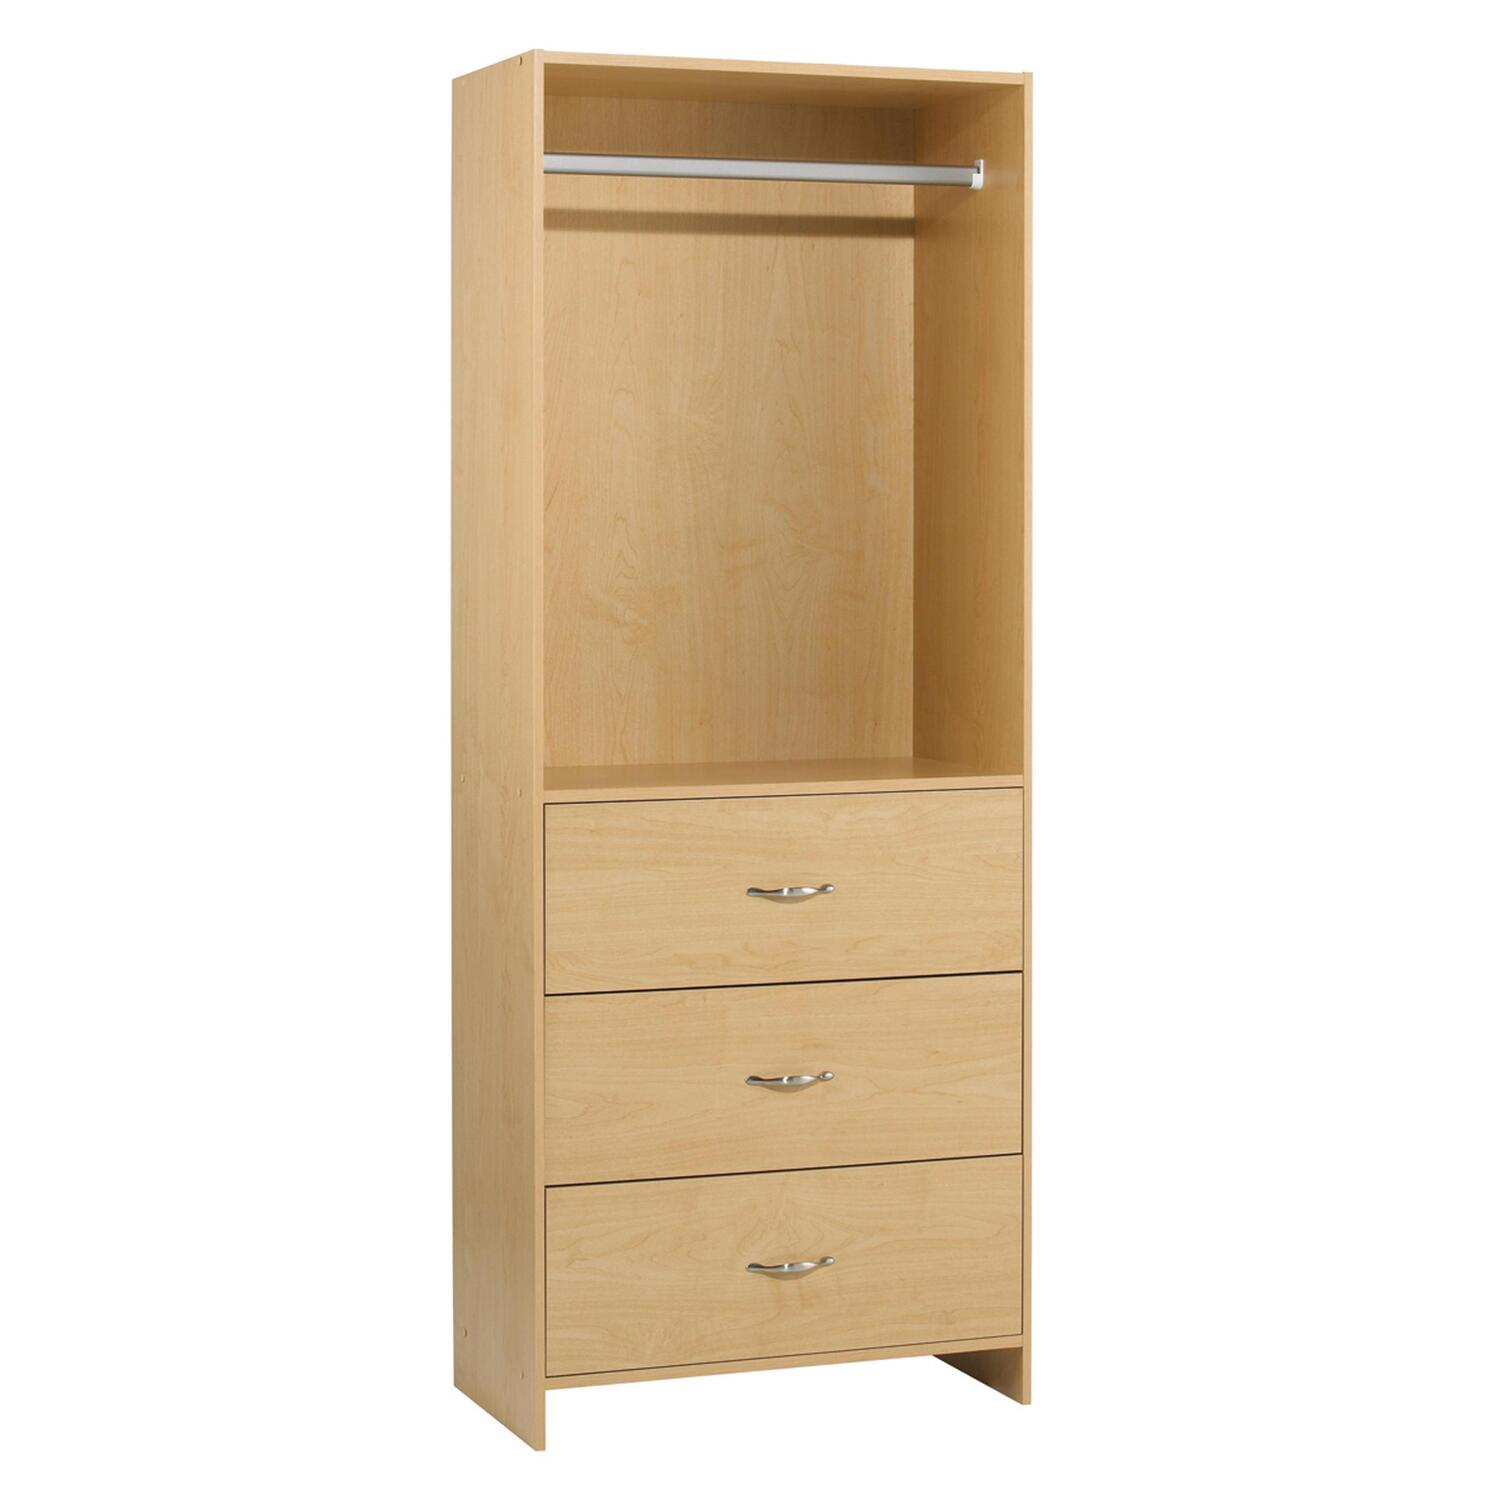 storage organizers shelving cabinet built your closets of design cupboard size with to solution in interior rubbermaid it best organizer chaos closet custom and the bedroom open do drawers full clothes professional shelves yourself system